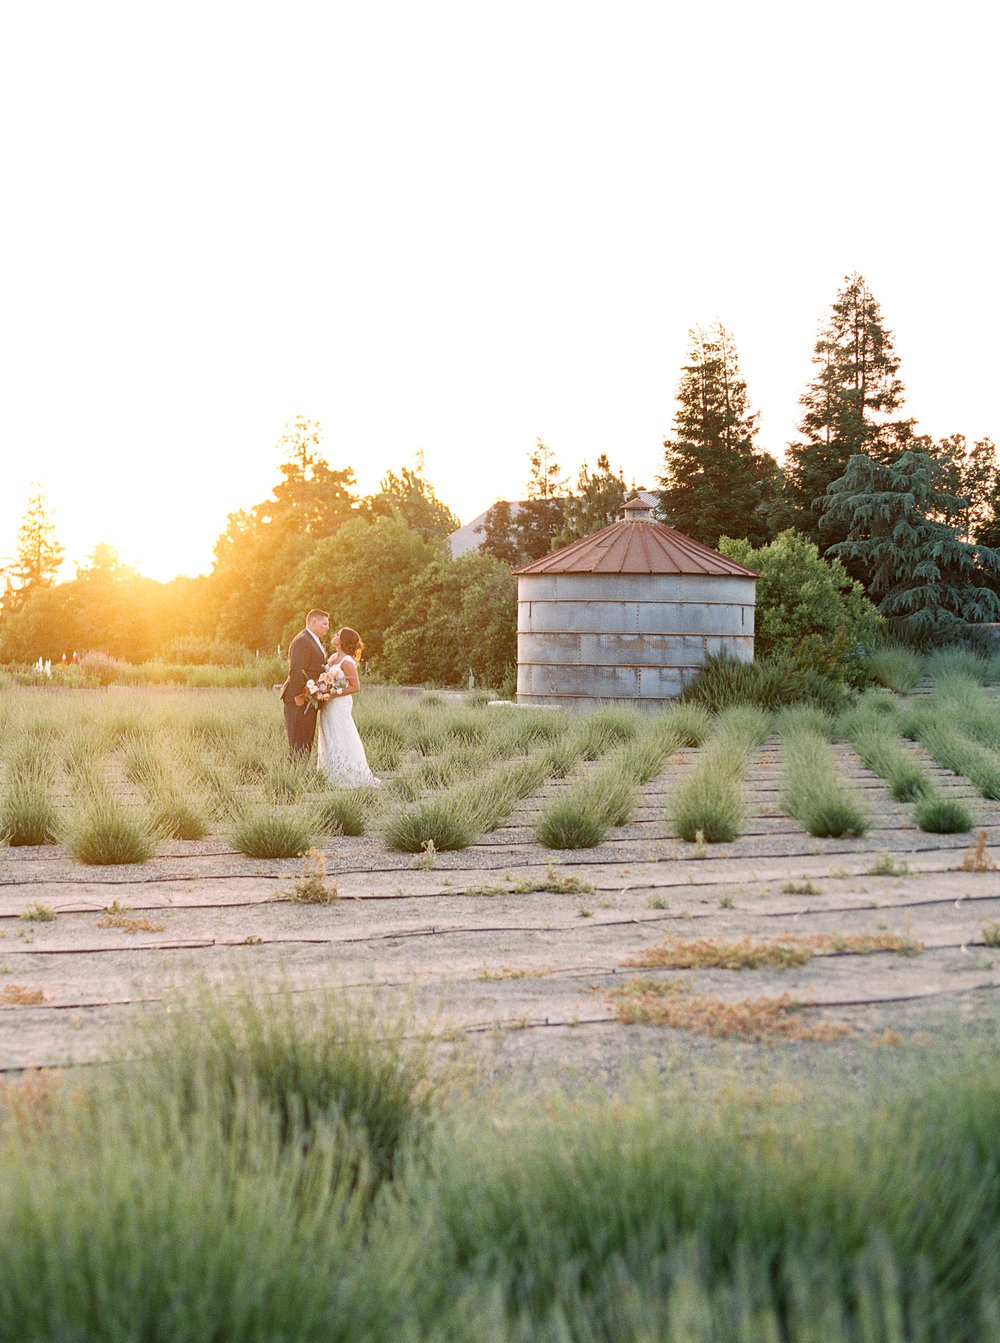 pageo-lavender-farm-wedding-turlock-california-34.jpg